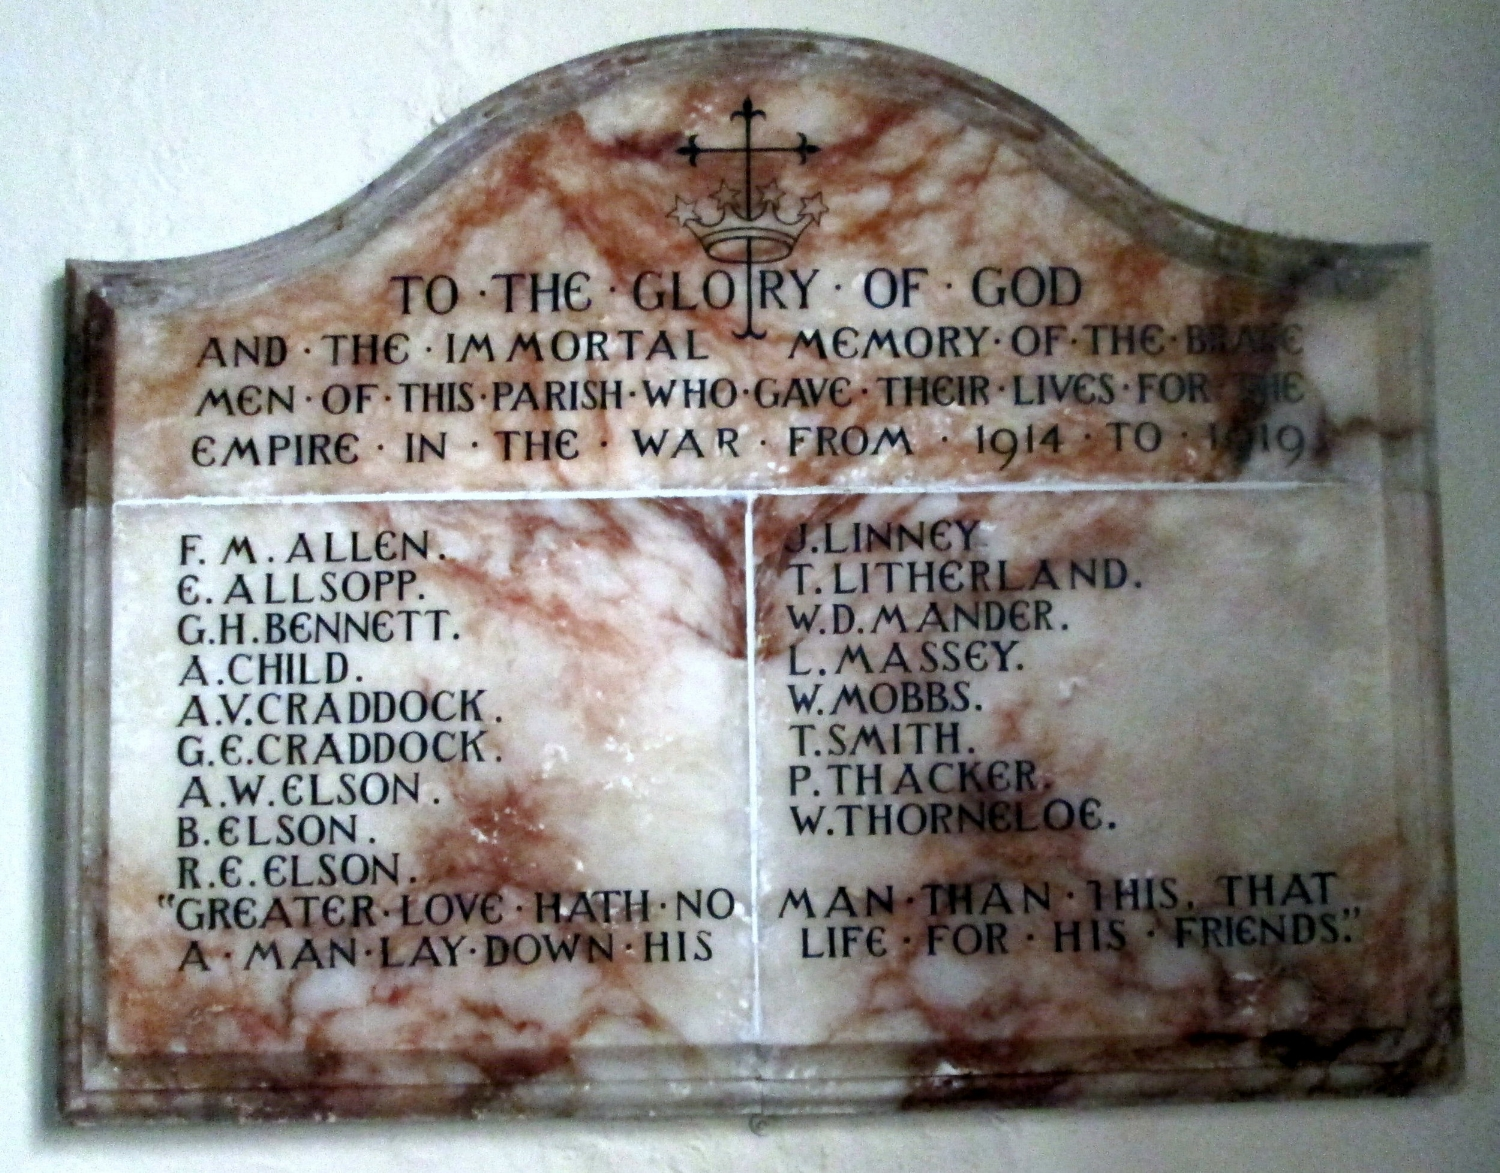 Photograph of the War Memorial in the Parish Church of St John the Baptist, Wall, Staffordshire